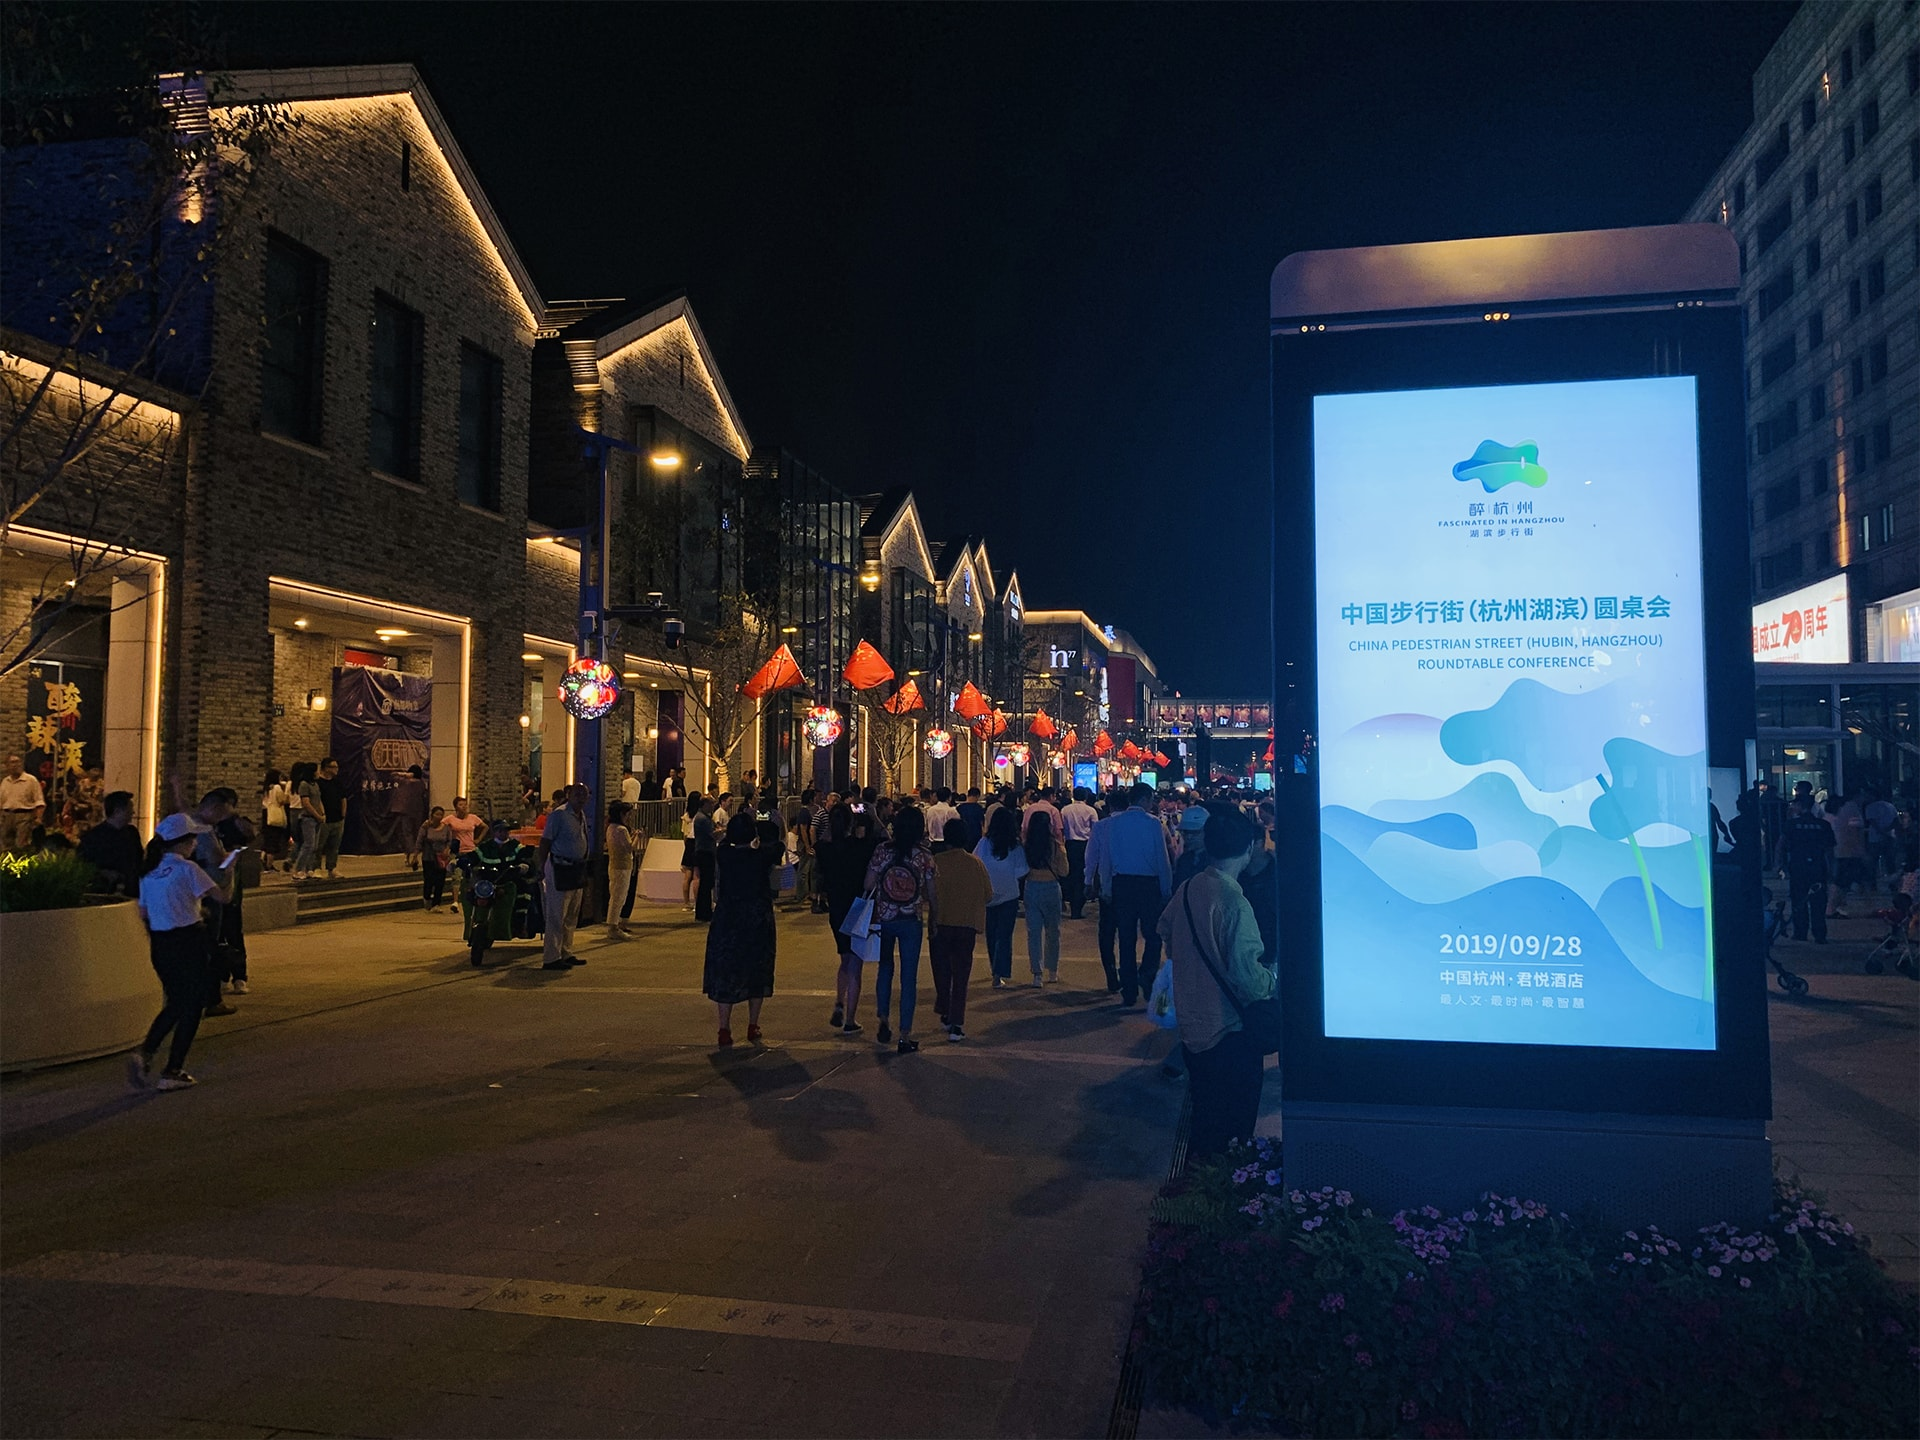 httpswww.betvis.combetvis-smart-outdoor-screens-light-up-the-city-of-hangzhou-10